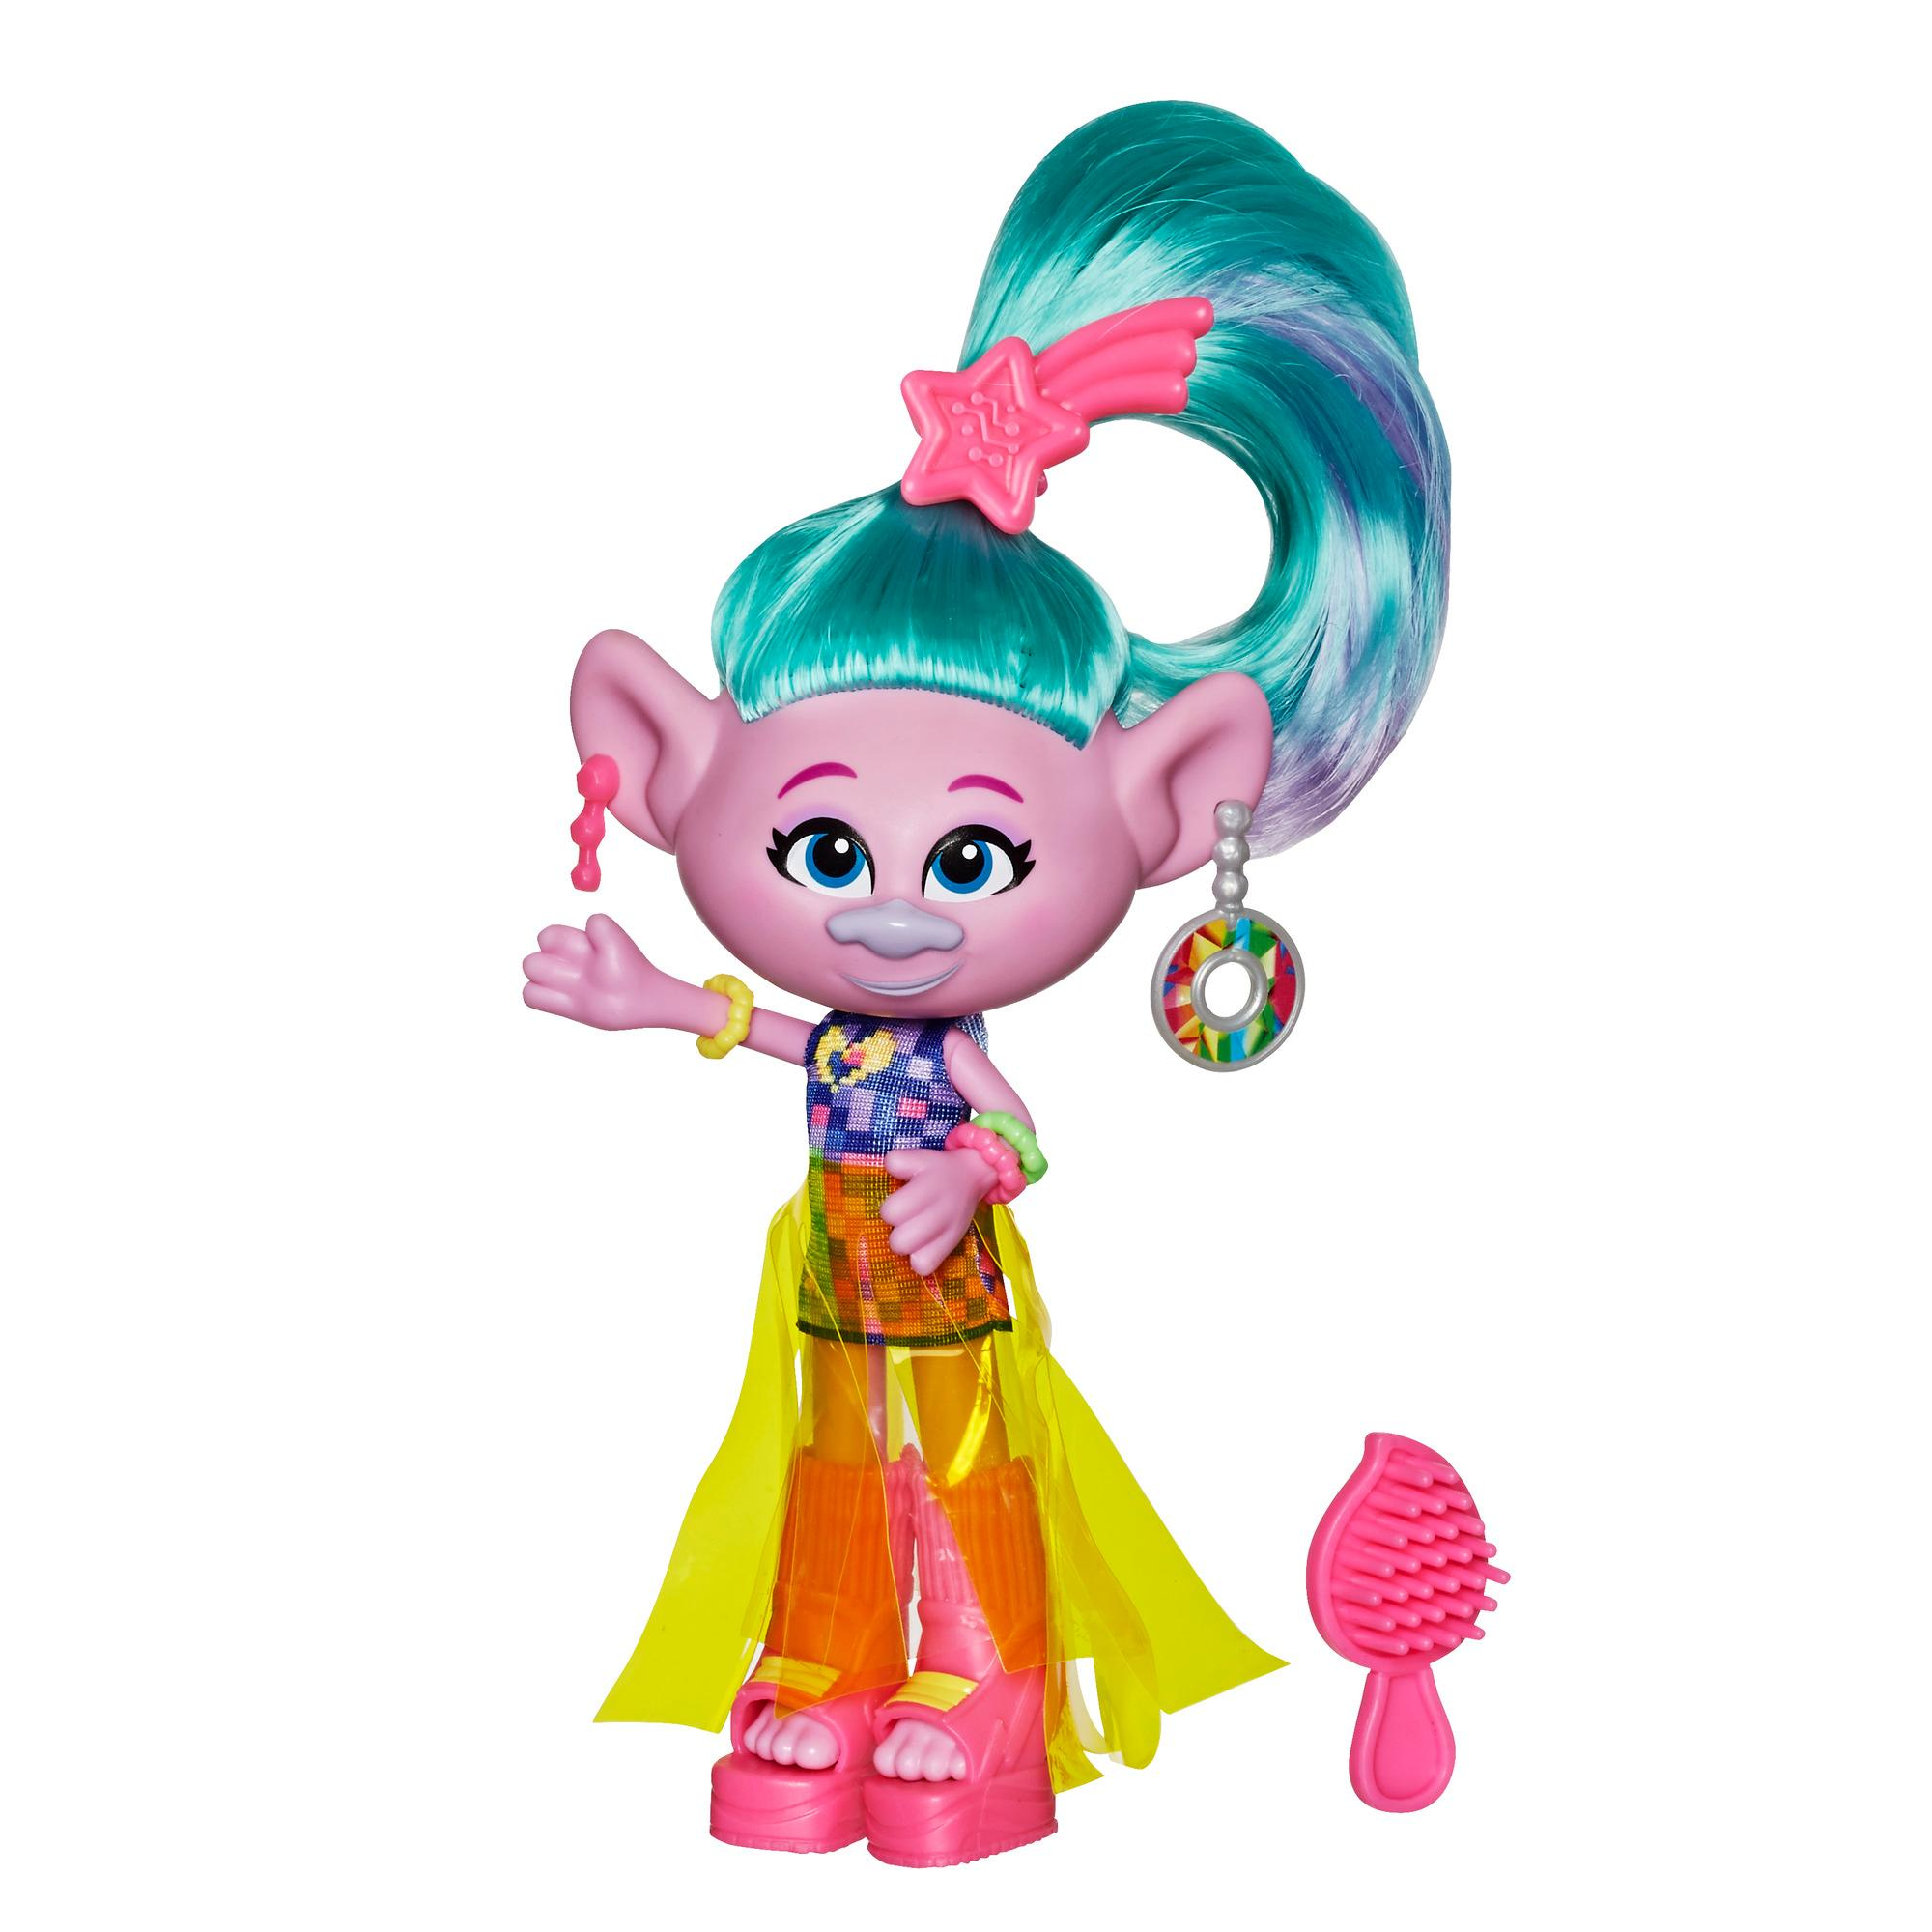 DreamWorks Trolls Glam Satin Fashion Doll with Dress, and More, Inspired by the Movie Trolls World Tour, Toy for Girls